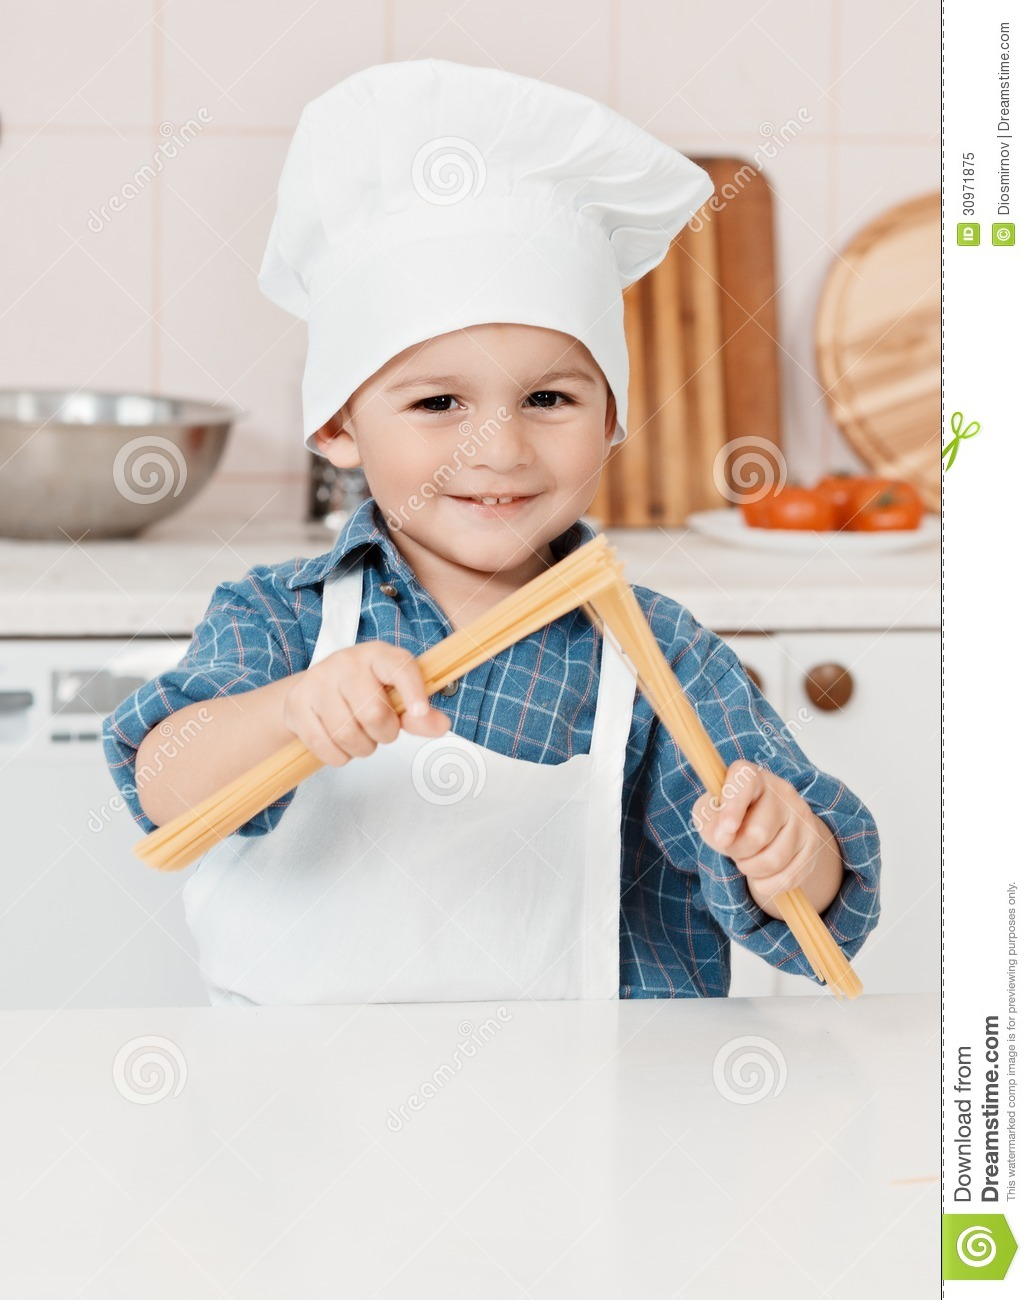 c35d97eb540 Portrait Of A Little Chef Hat And Apron Stock Image - Image of baker ...